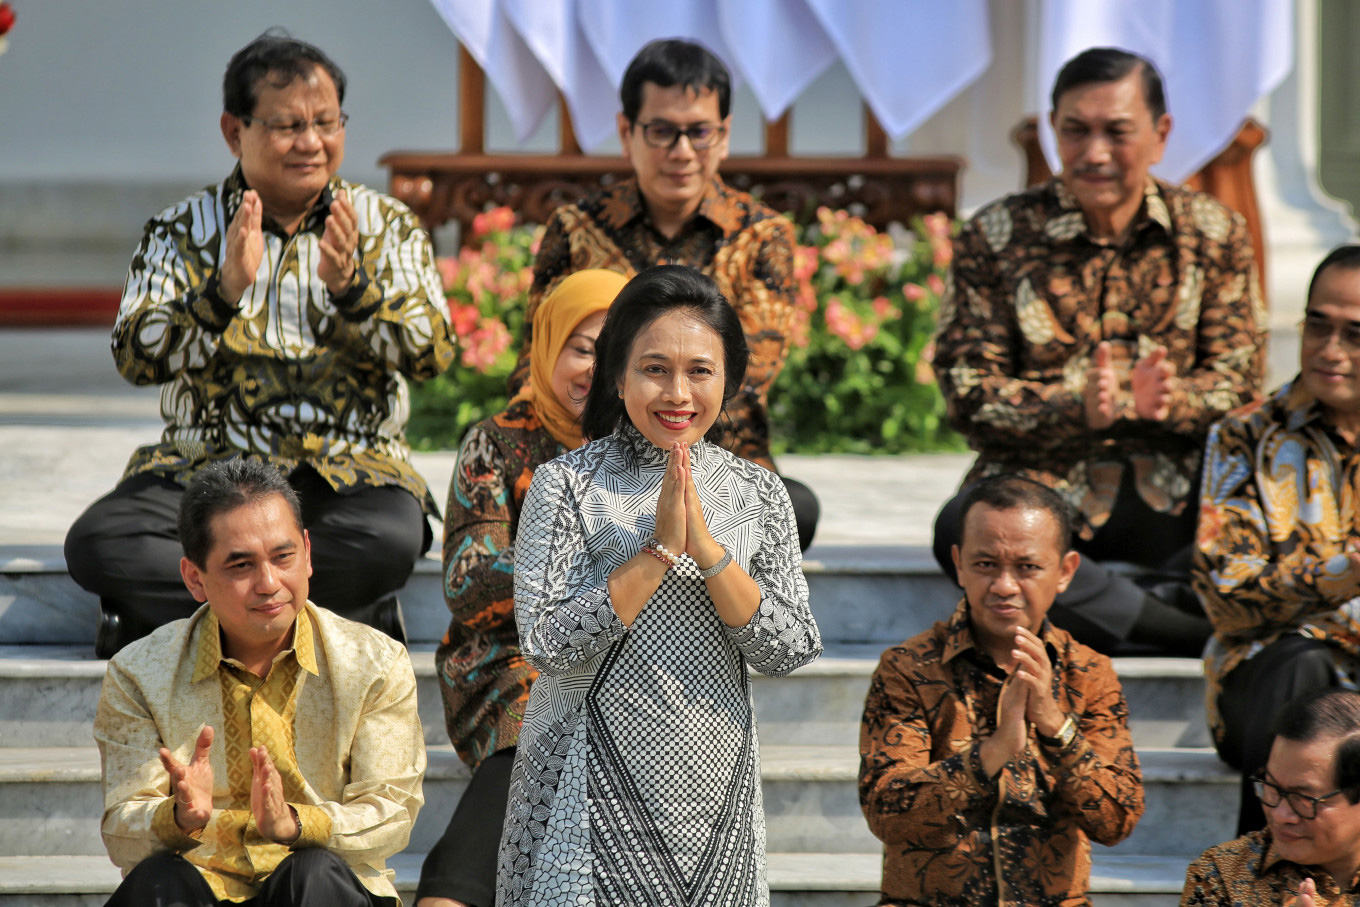 Empowerment or privilege? Minister Bintang's challenge